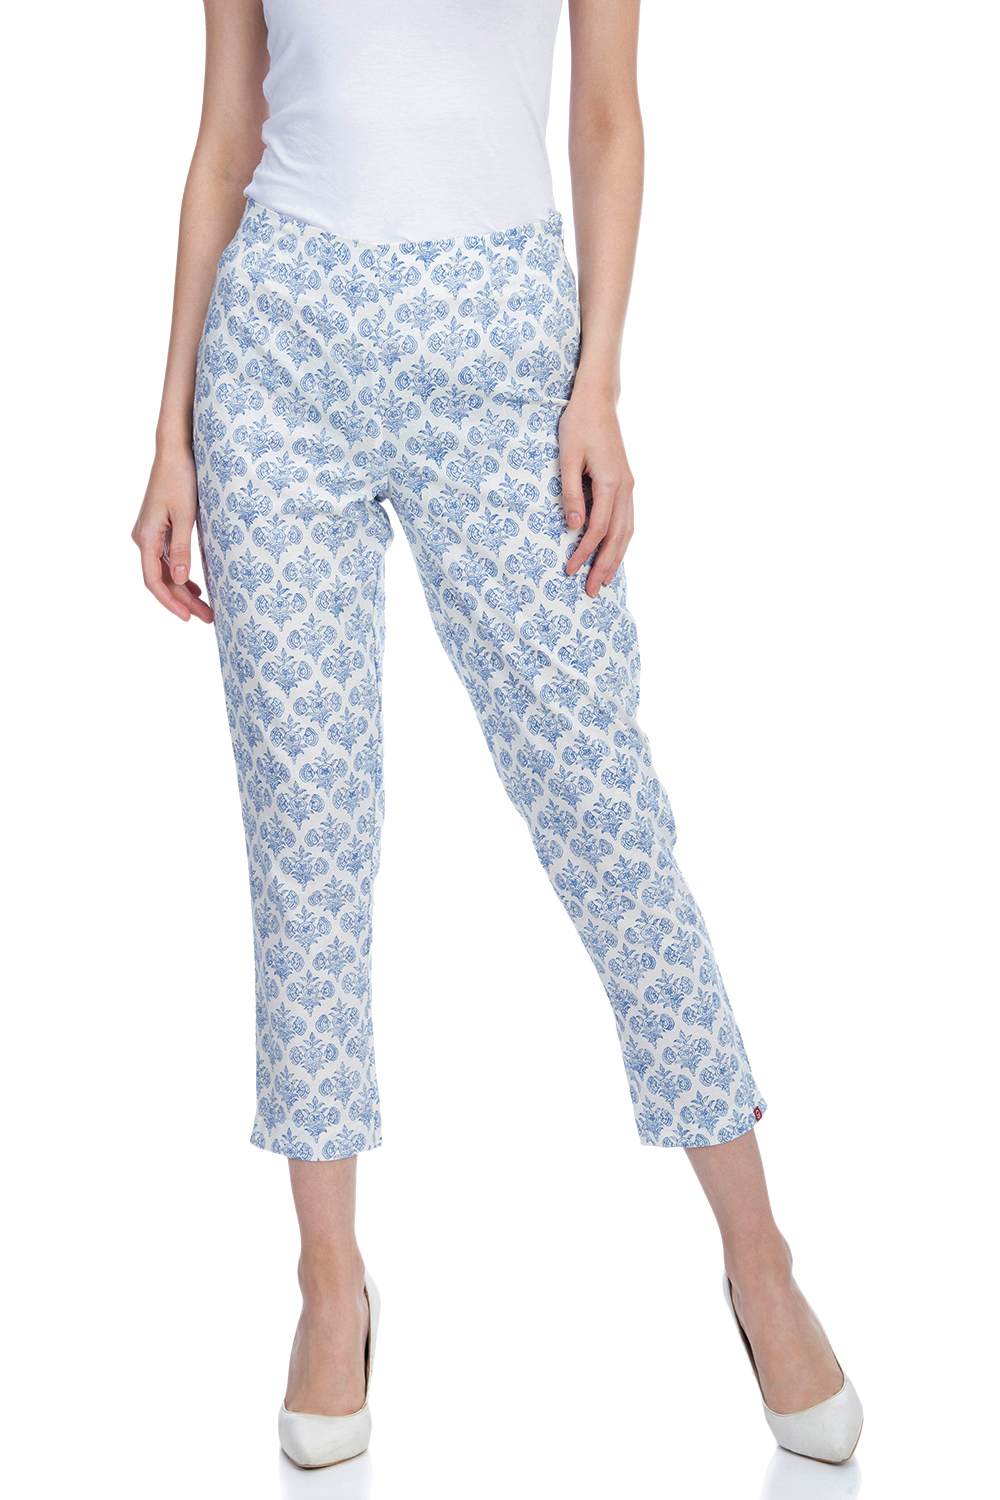 8c75a9178cfc87 Buy Online White And Blue Cotton Pants for Women & Girls at Best Prices in  Biba India-CORE14914SS19